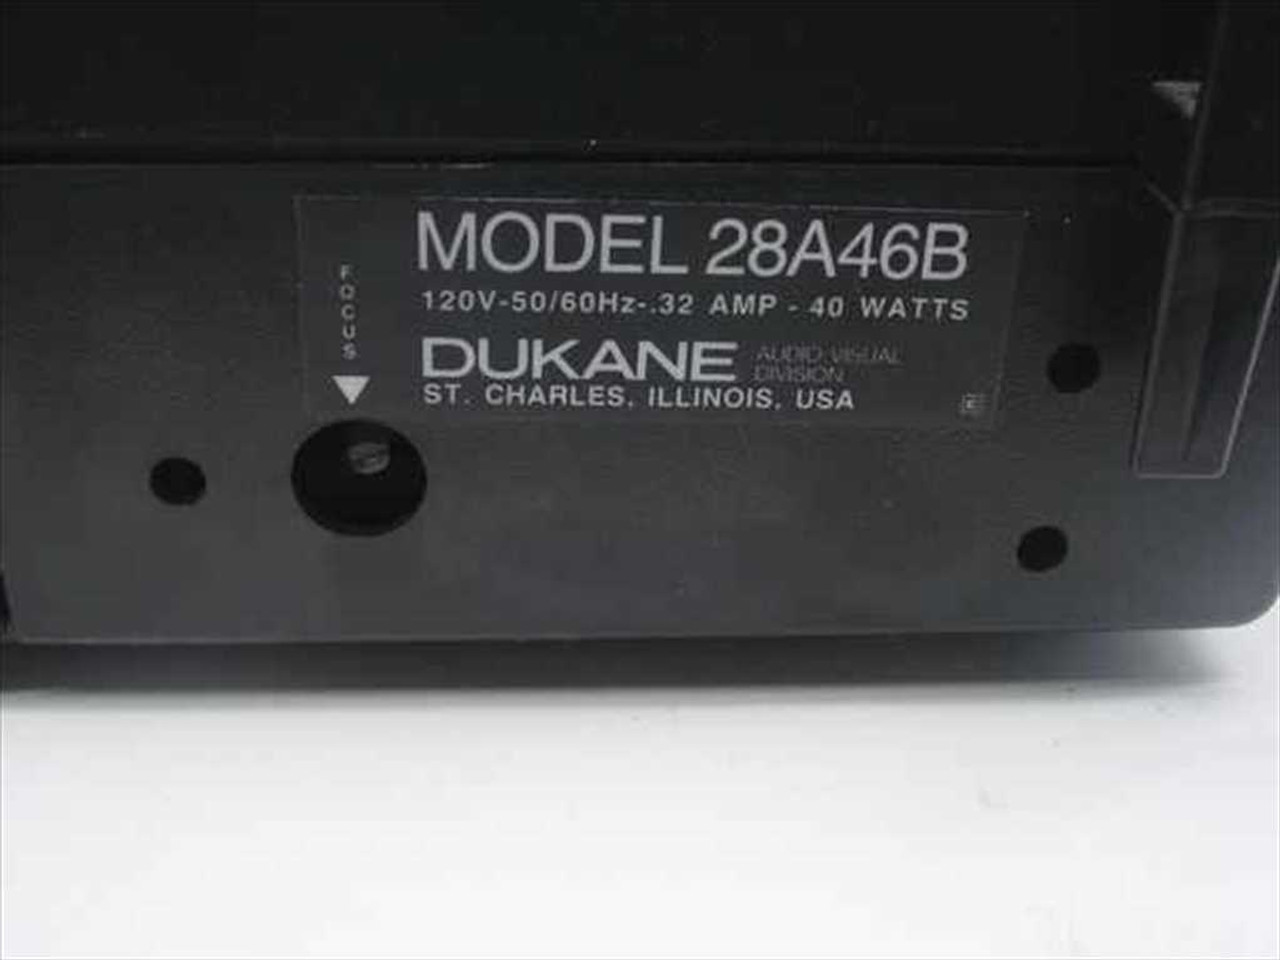 dukane 28a46b portable film viewer audio tape deck as is for repair [ 1024 x 768 Pixel ]